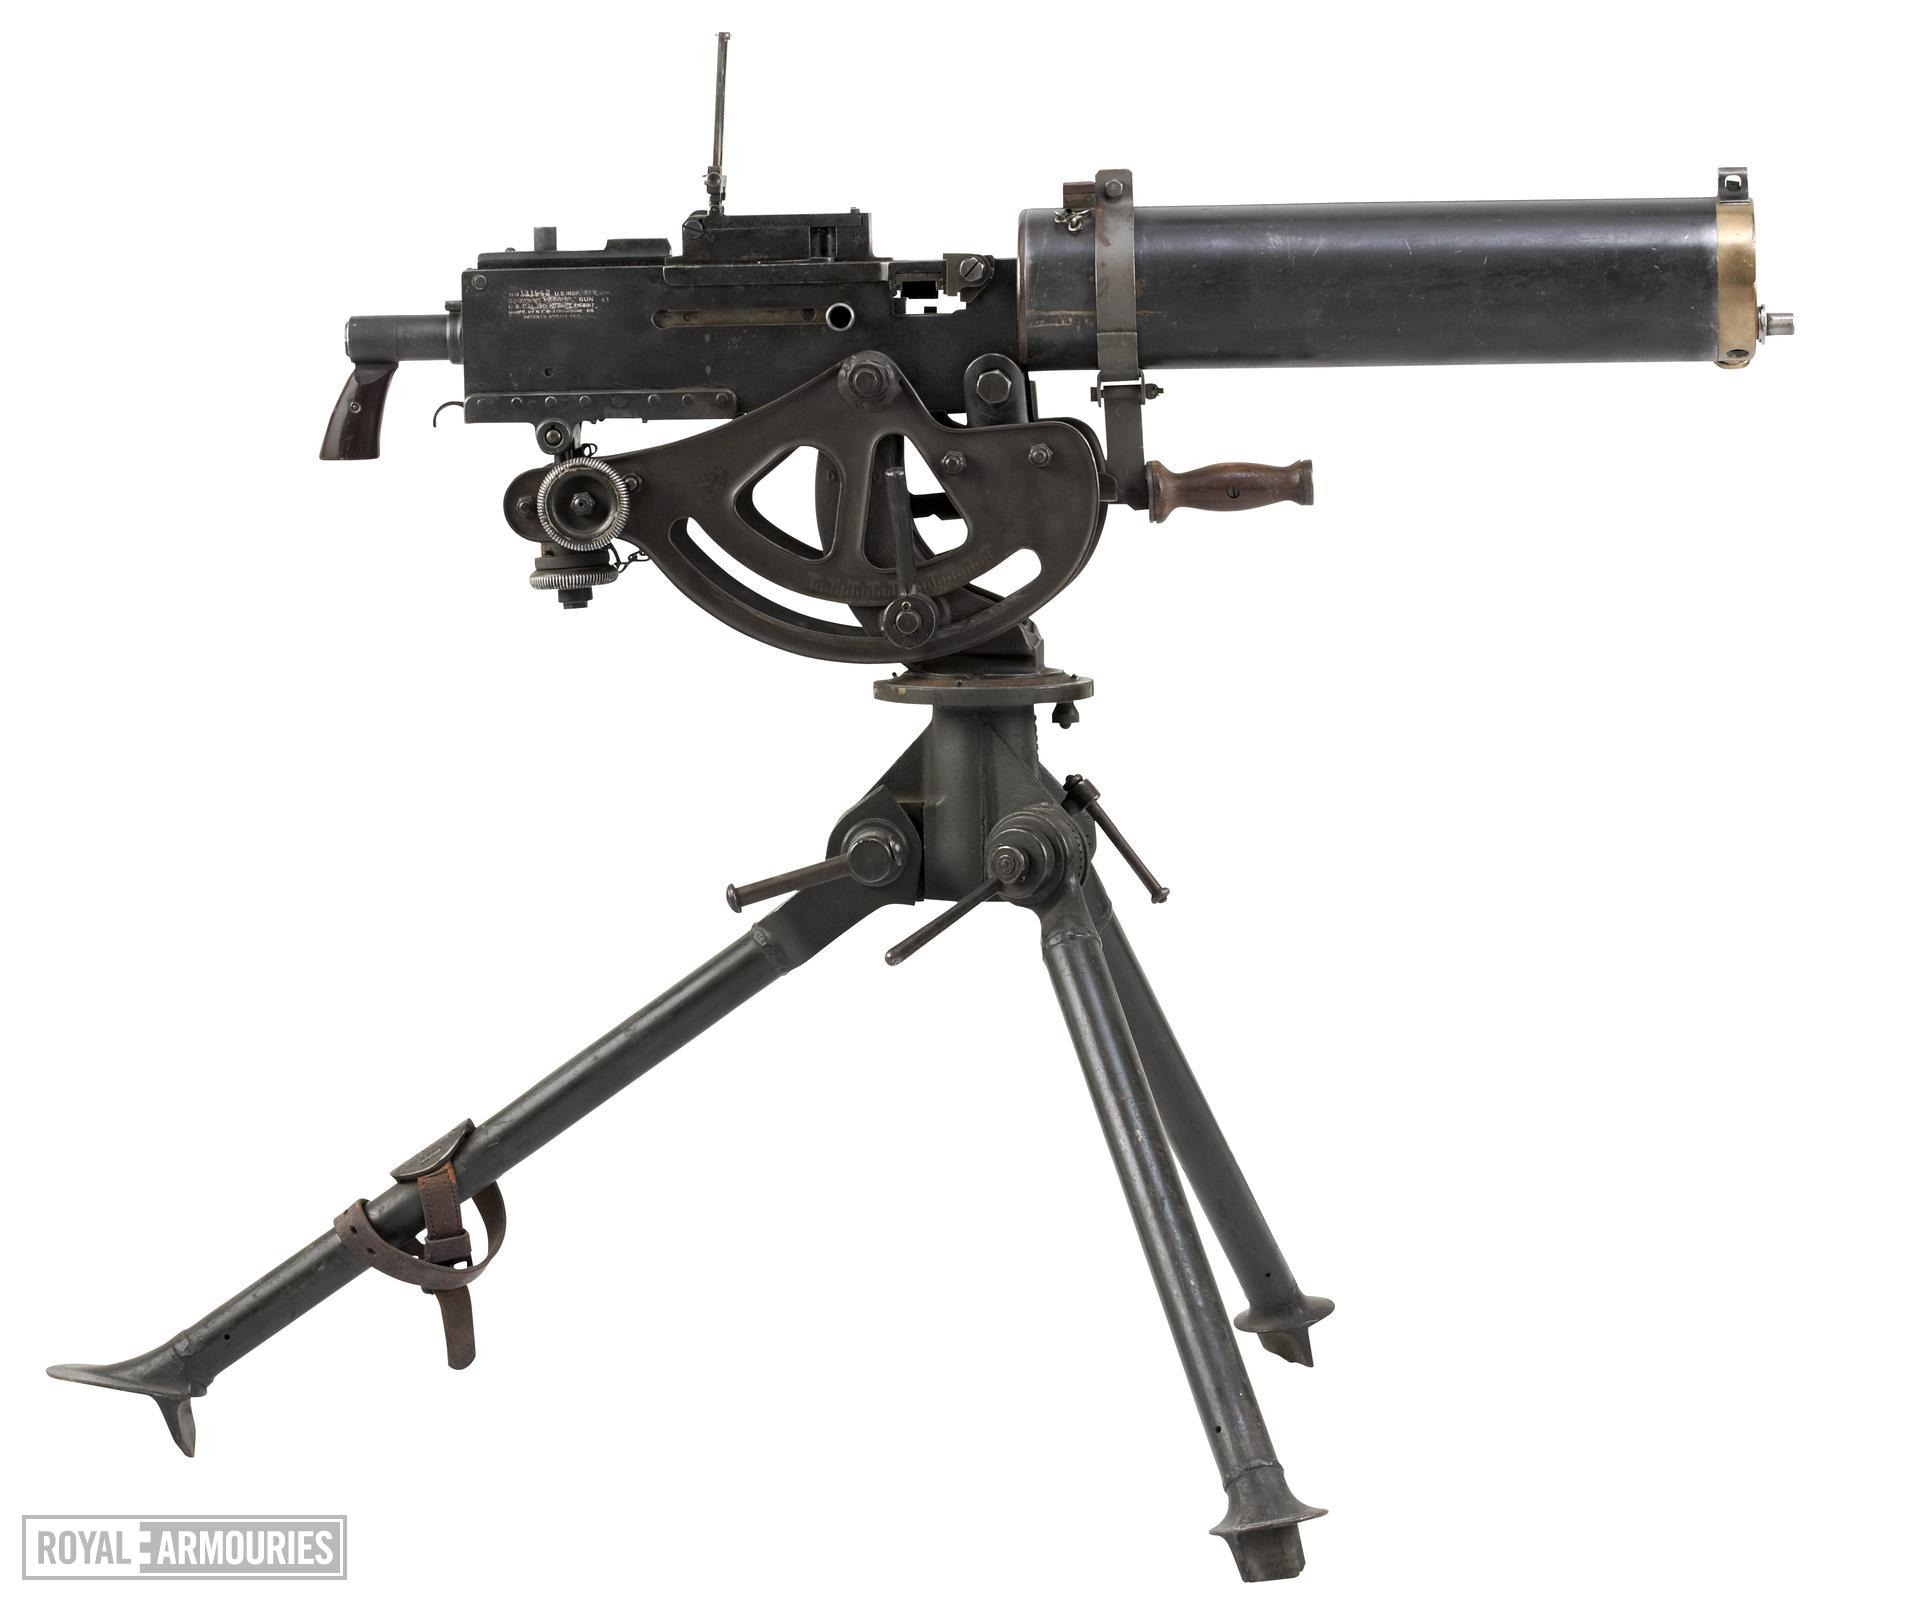 Browning Model of 1917 A1 machine gun by Colt, American, about 1918